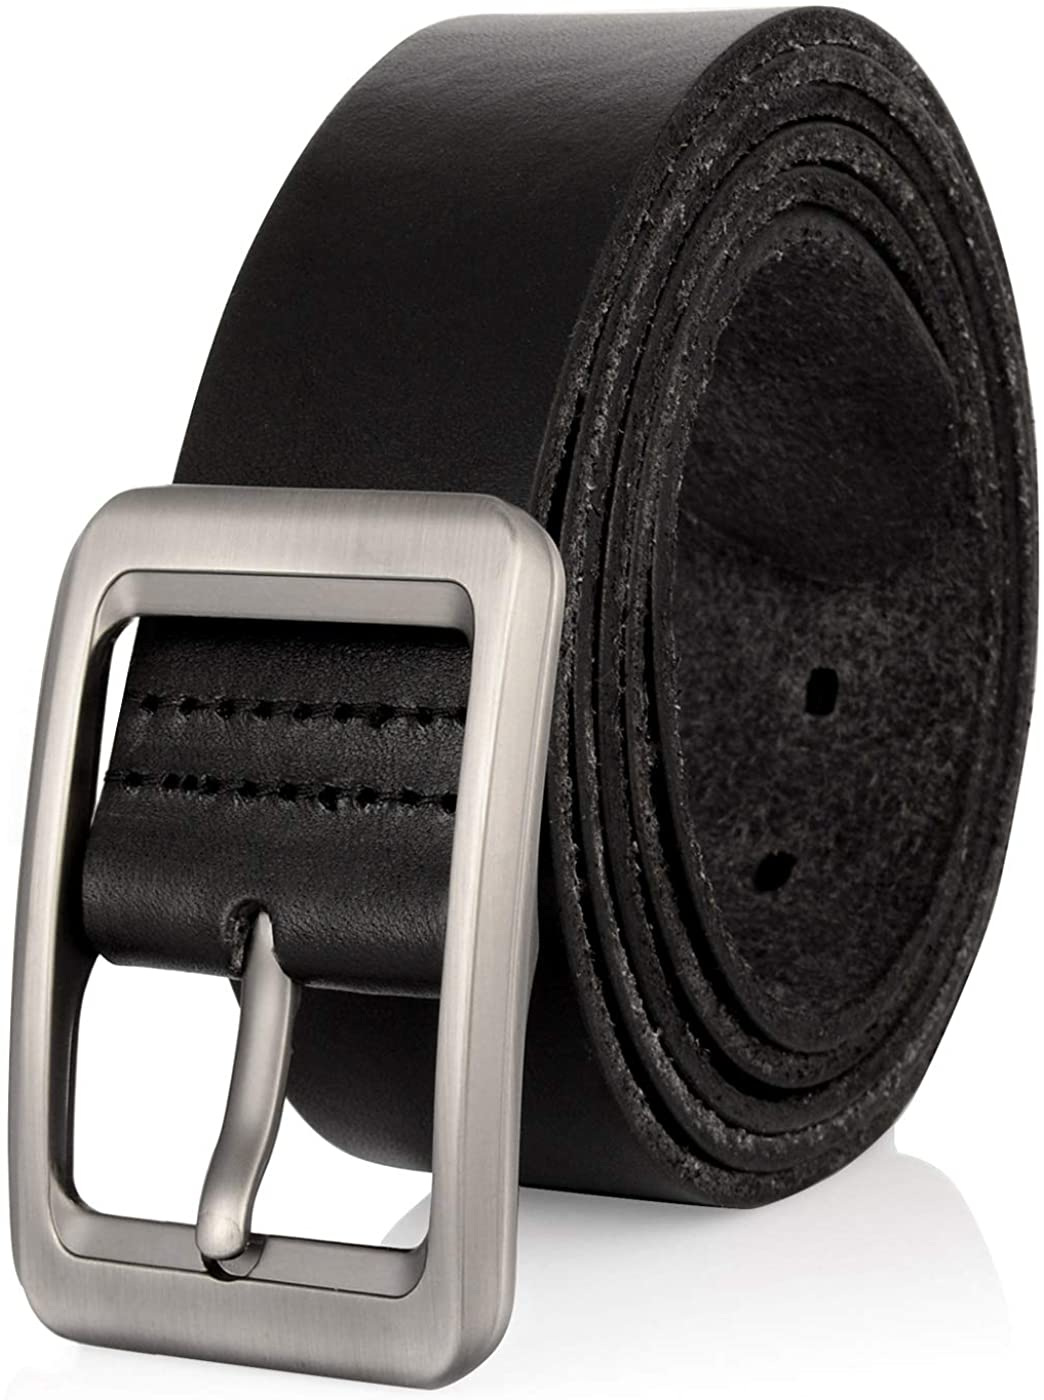 Drizzte 100% Full Grain Leather Belt, Big & Tall Size 44-66'' Mens Genuine Leather  Belts Black at Amazon Men's Clothing store